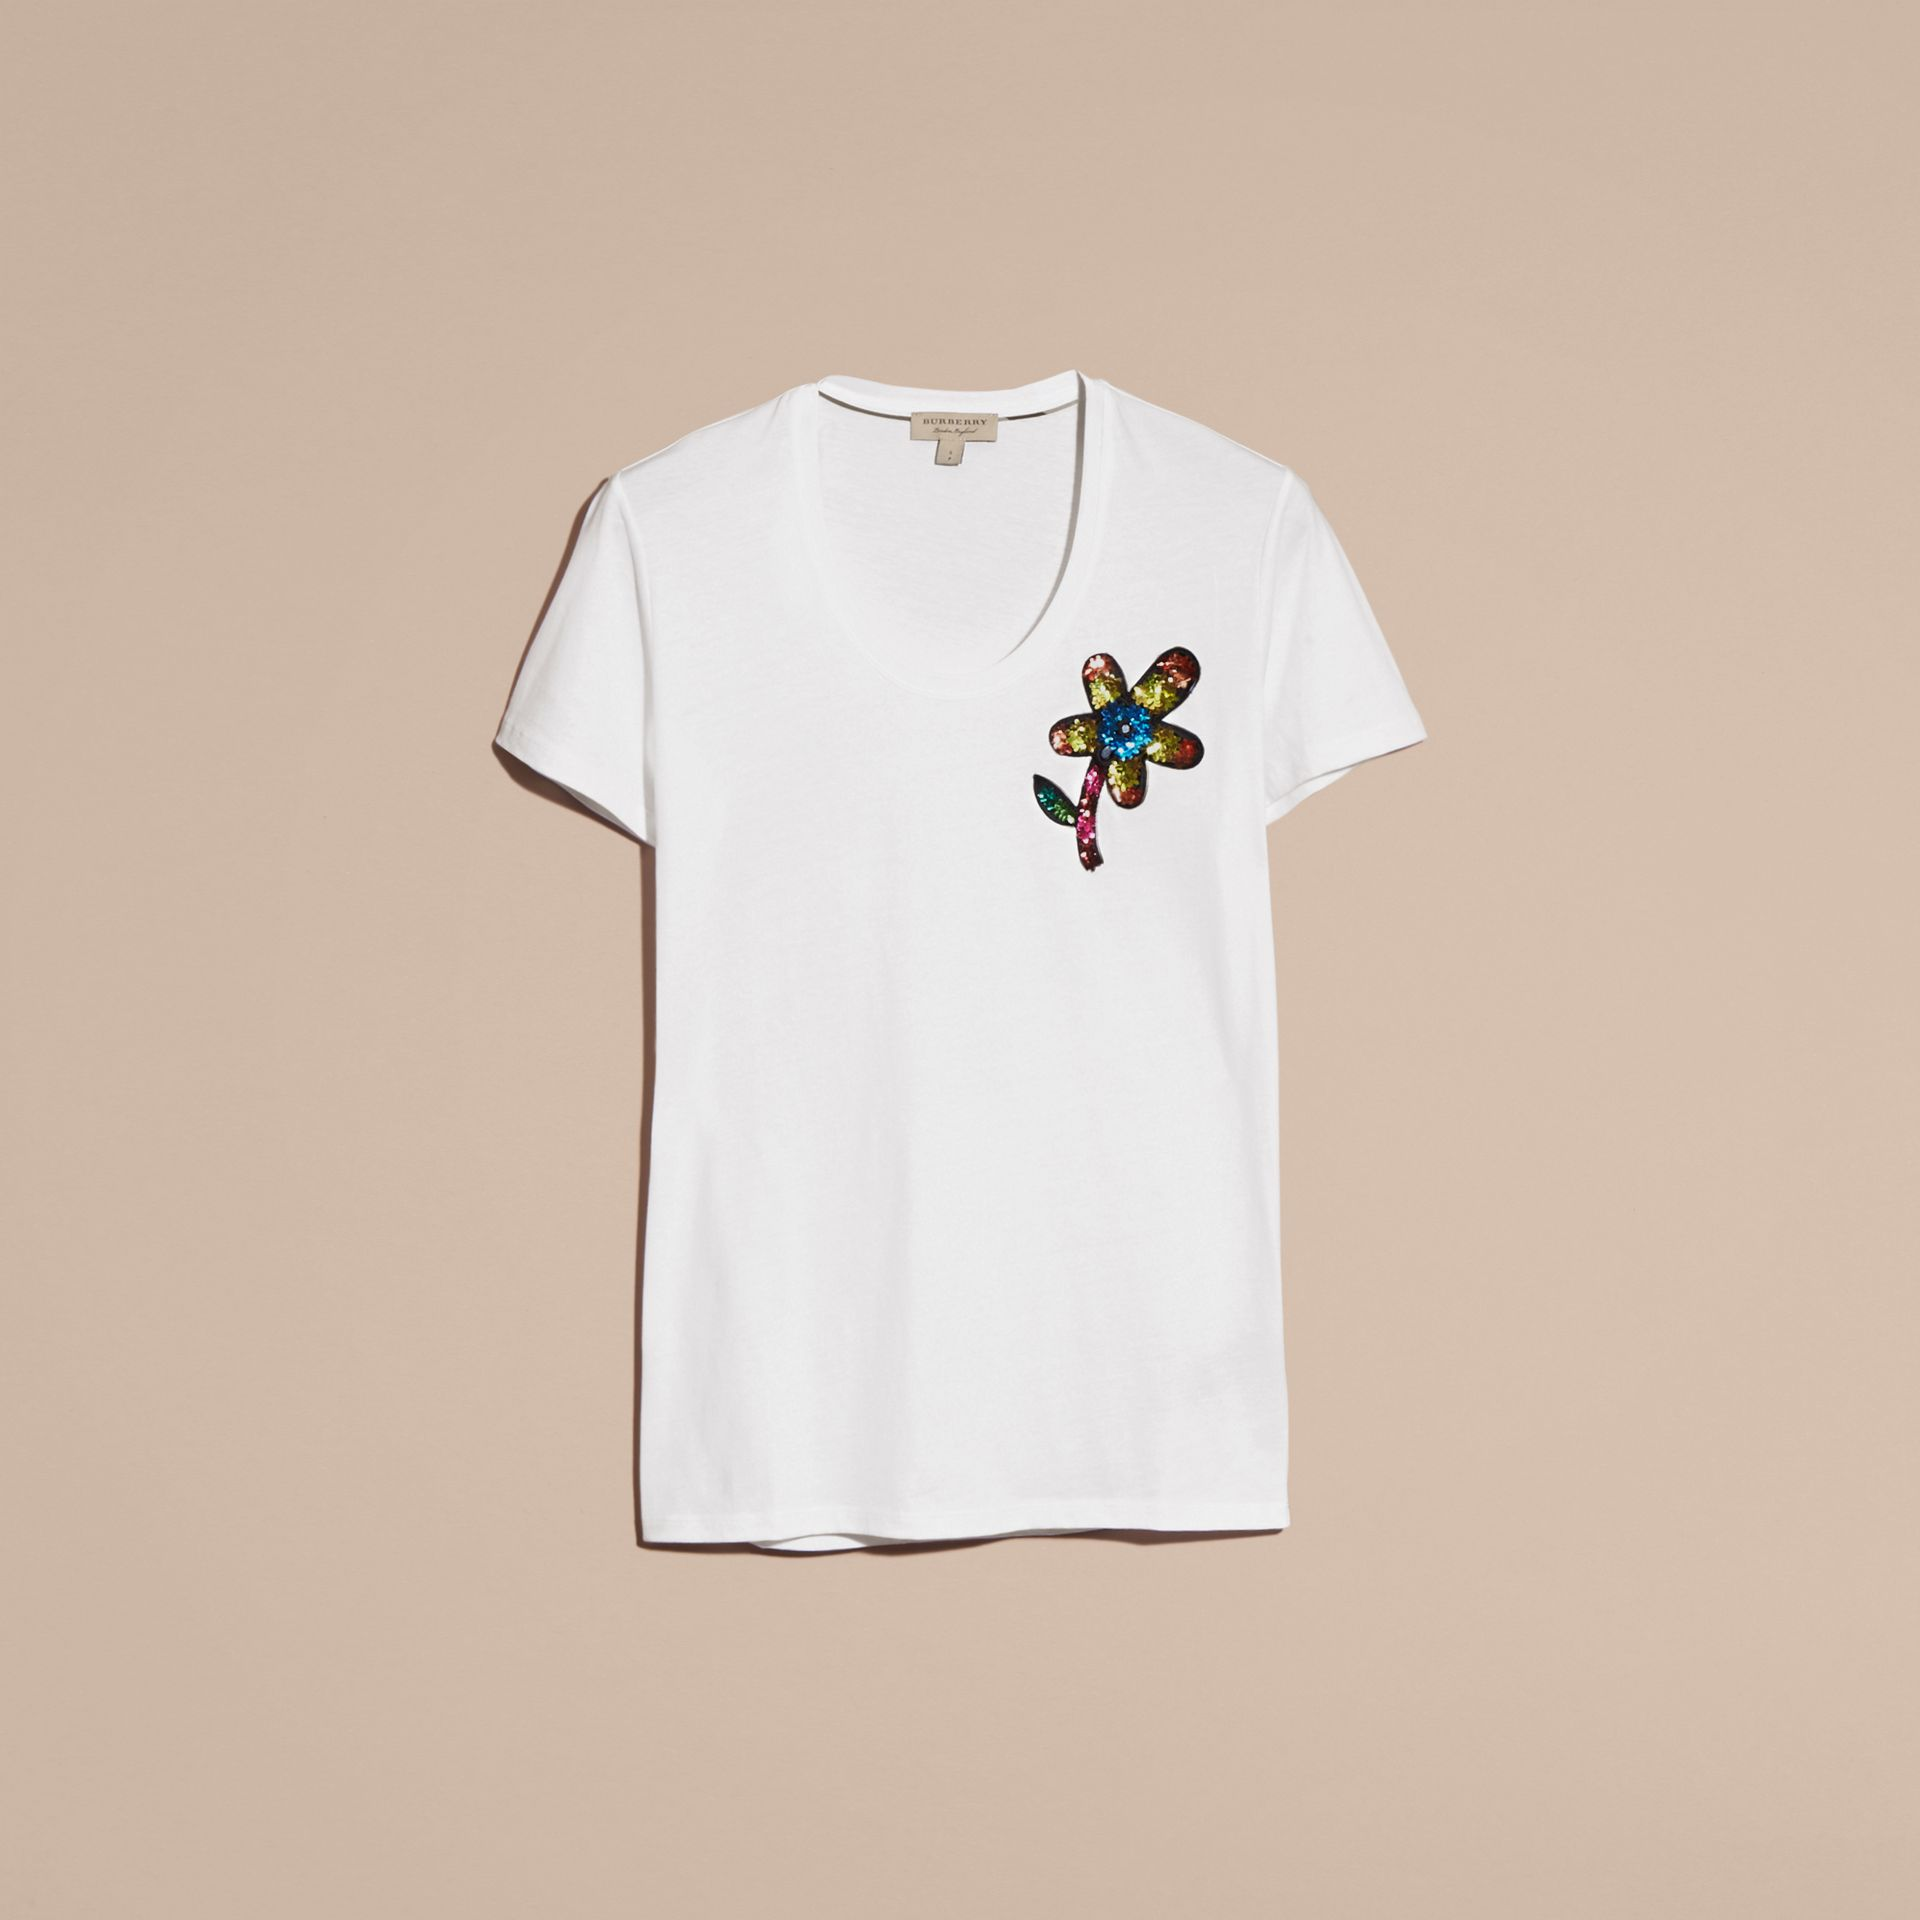 White Sequin Floral Appliqué Cotton T-Shirt White - gallery image 4